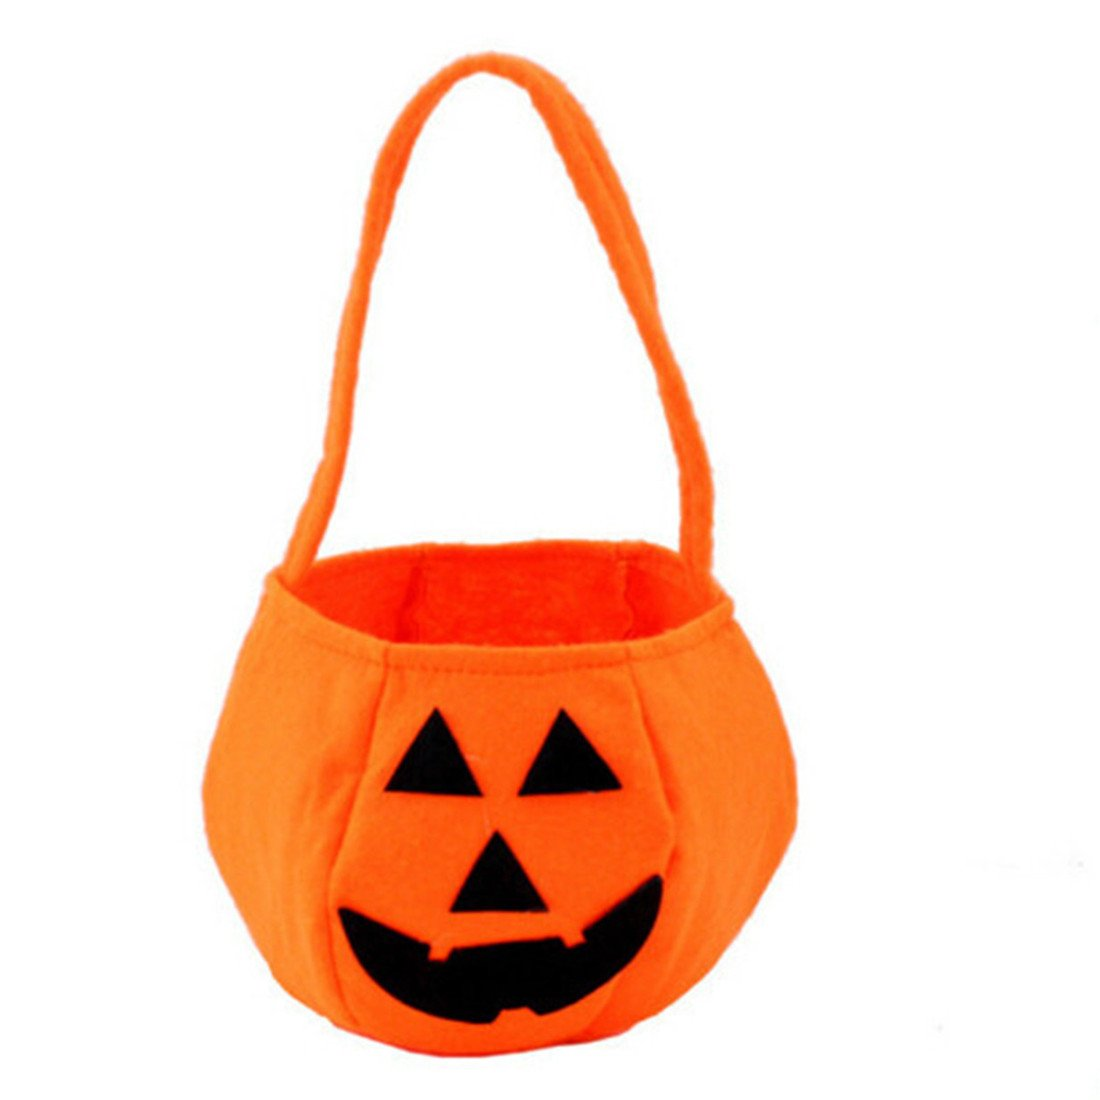 Edtoy Halloween Pumpkin Bag Kids Candy Bag for Halloween Party Costumes